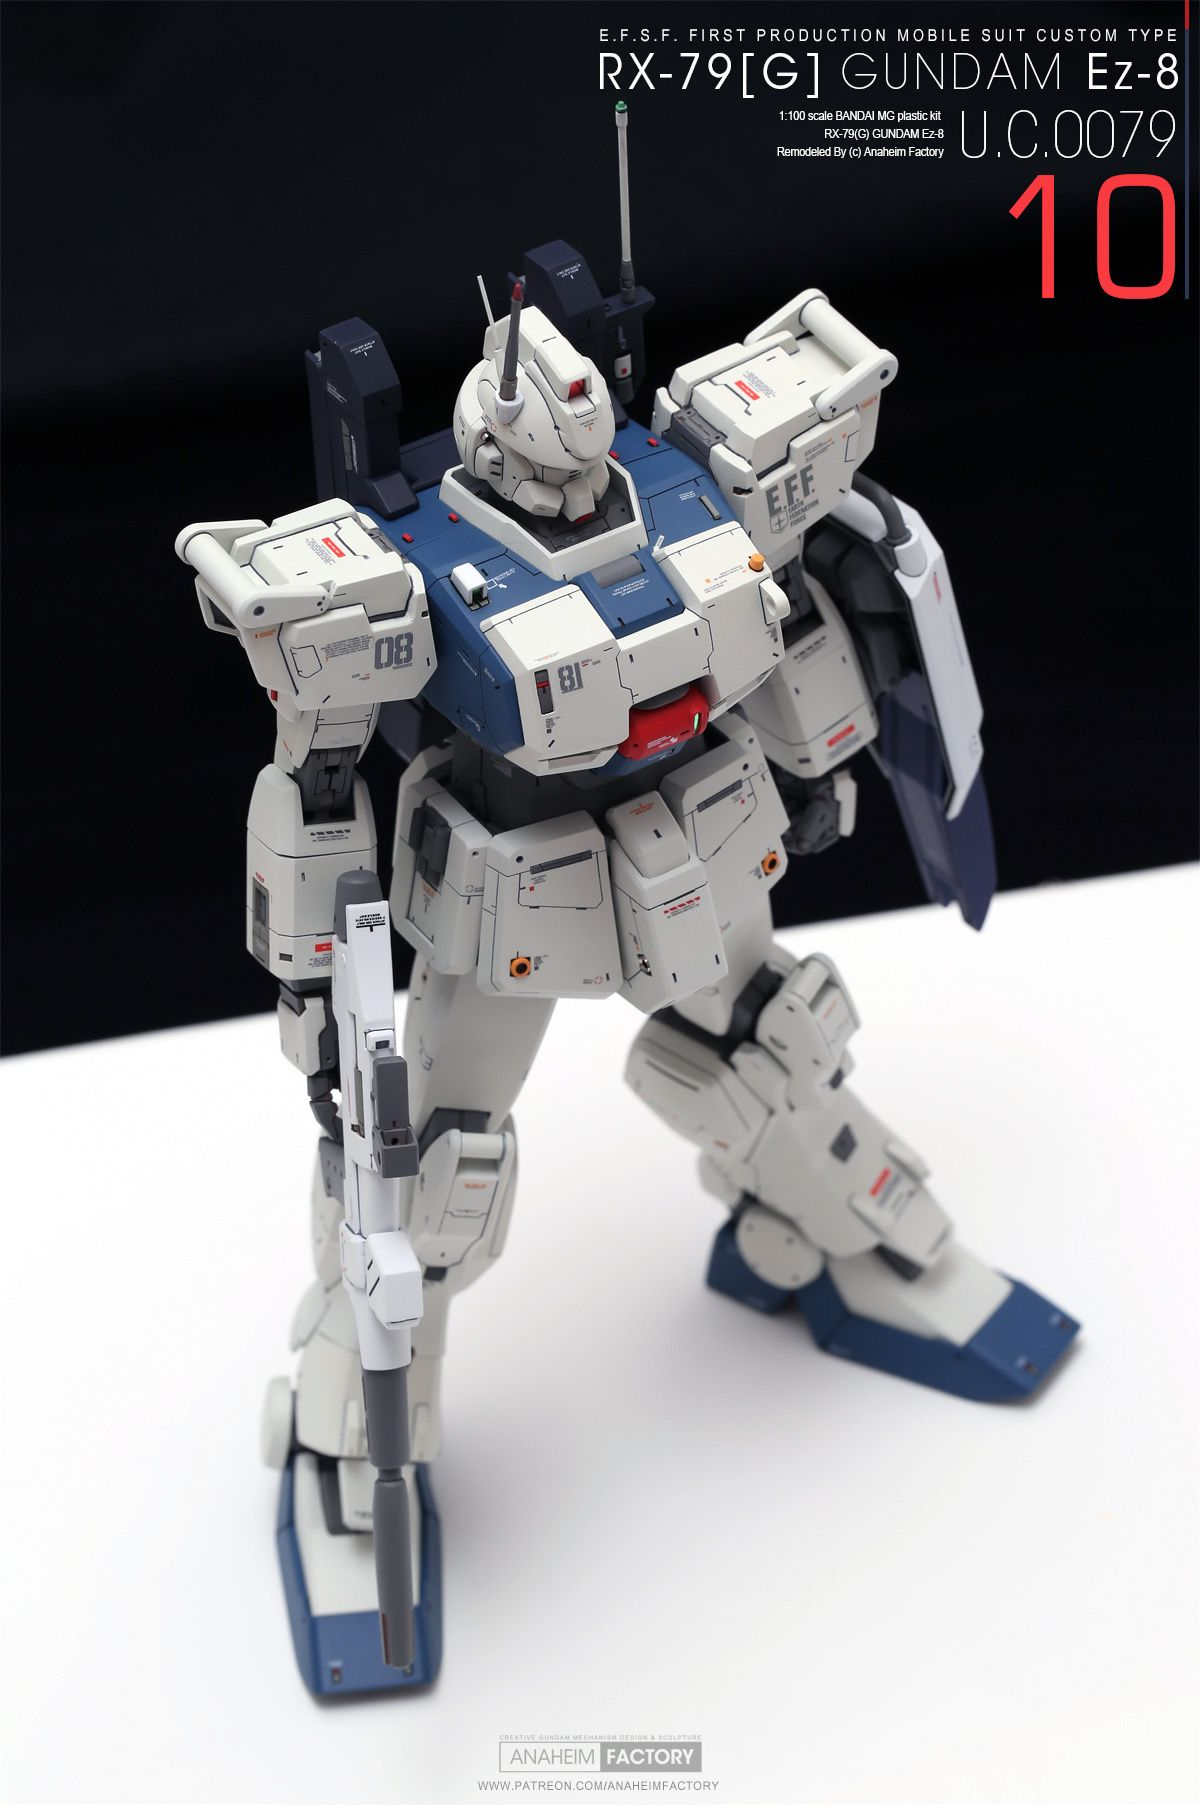 10 [ROLL OUT] RX79[G] GUNDAM Ez8 (With images) Gundam